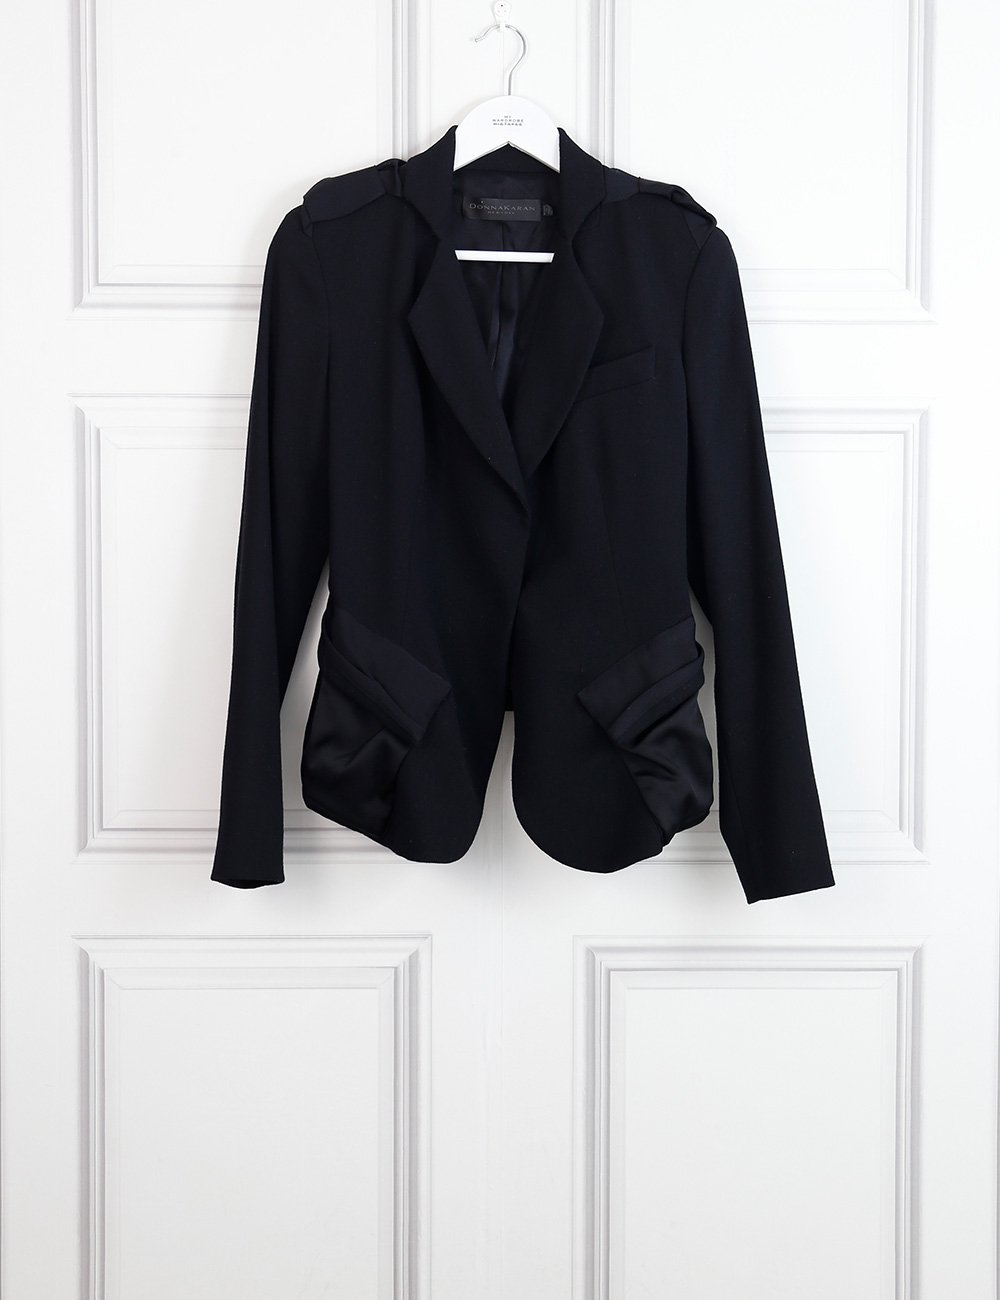 Donna Karan black tailored jacket with details 14 Uk- My Wardrobe Mistakes